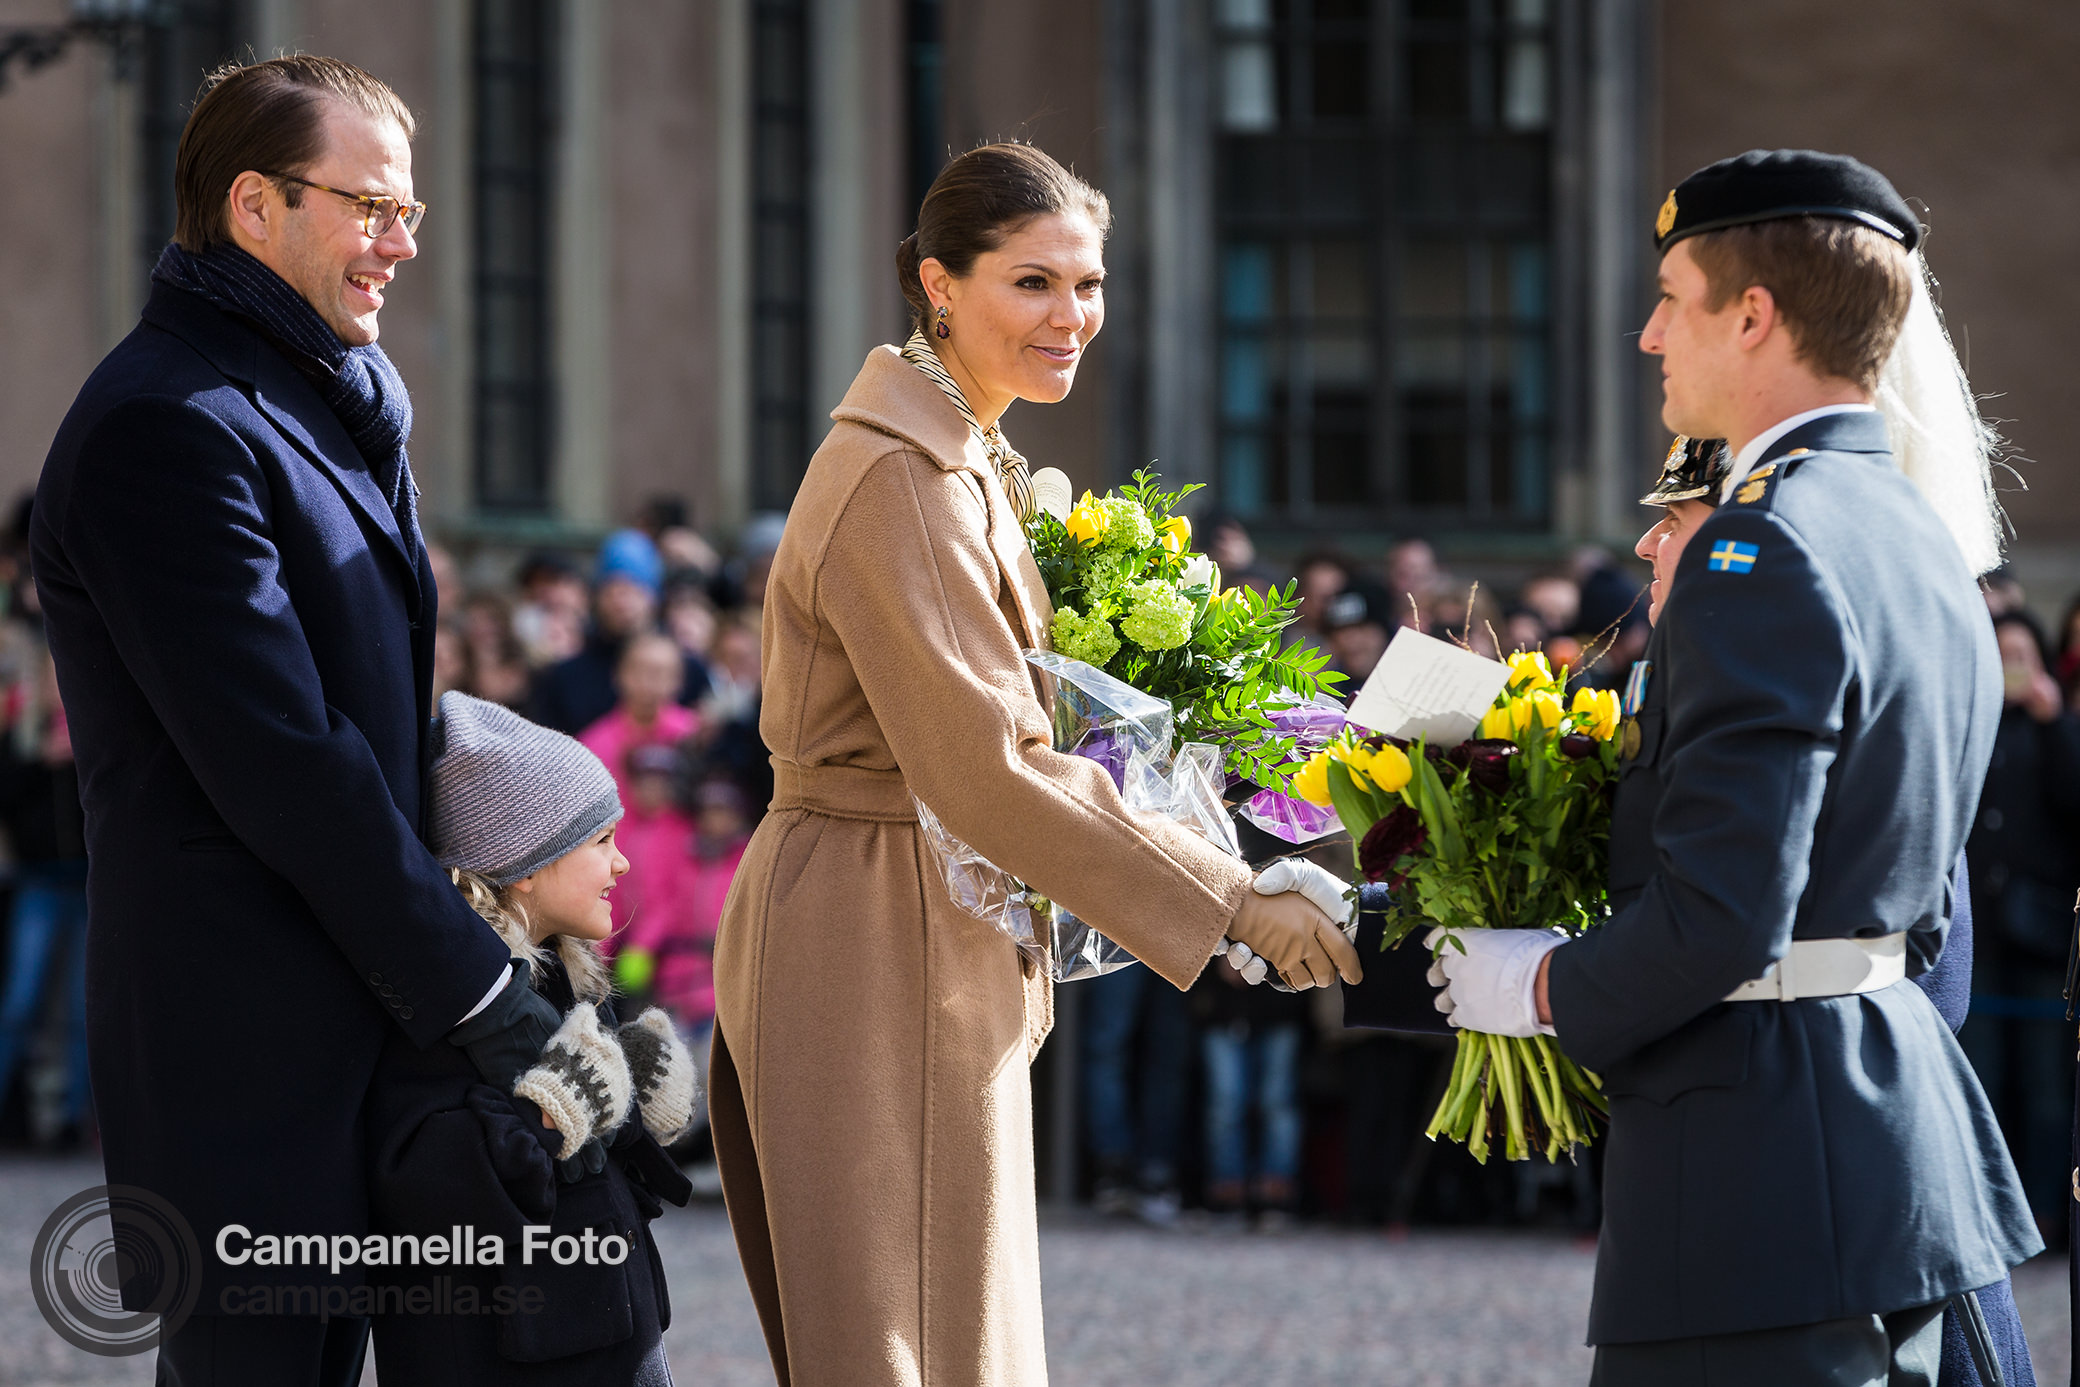 Name day celebration for Princess Victoria - Michael Campanella Photography